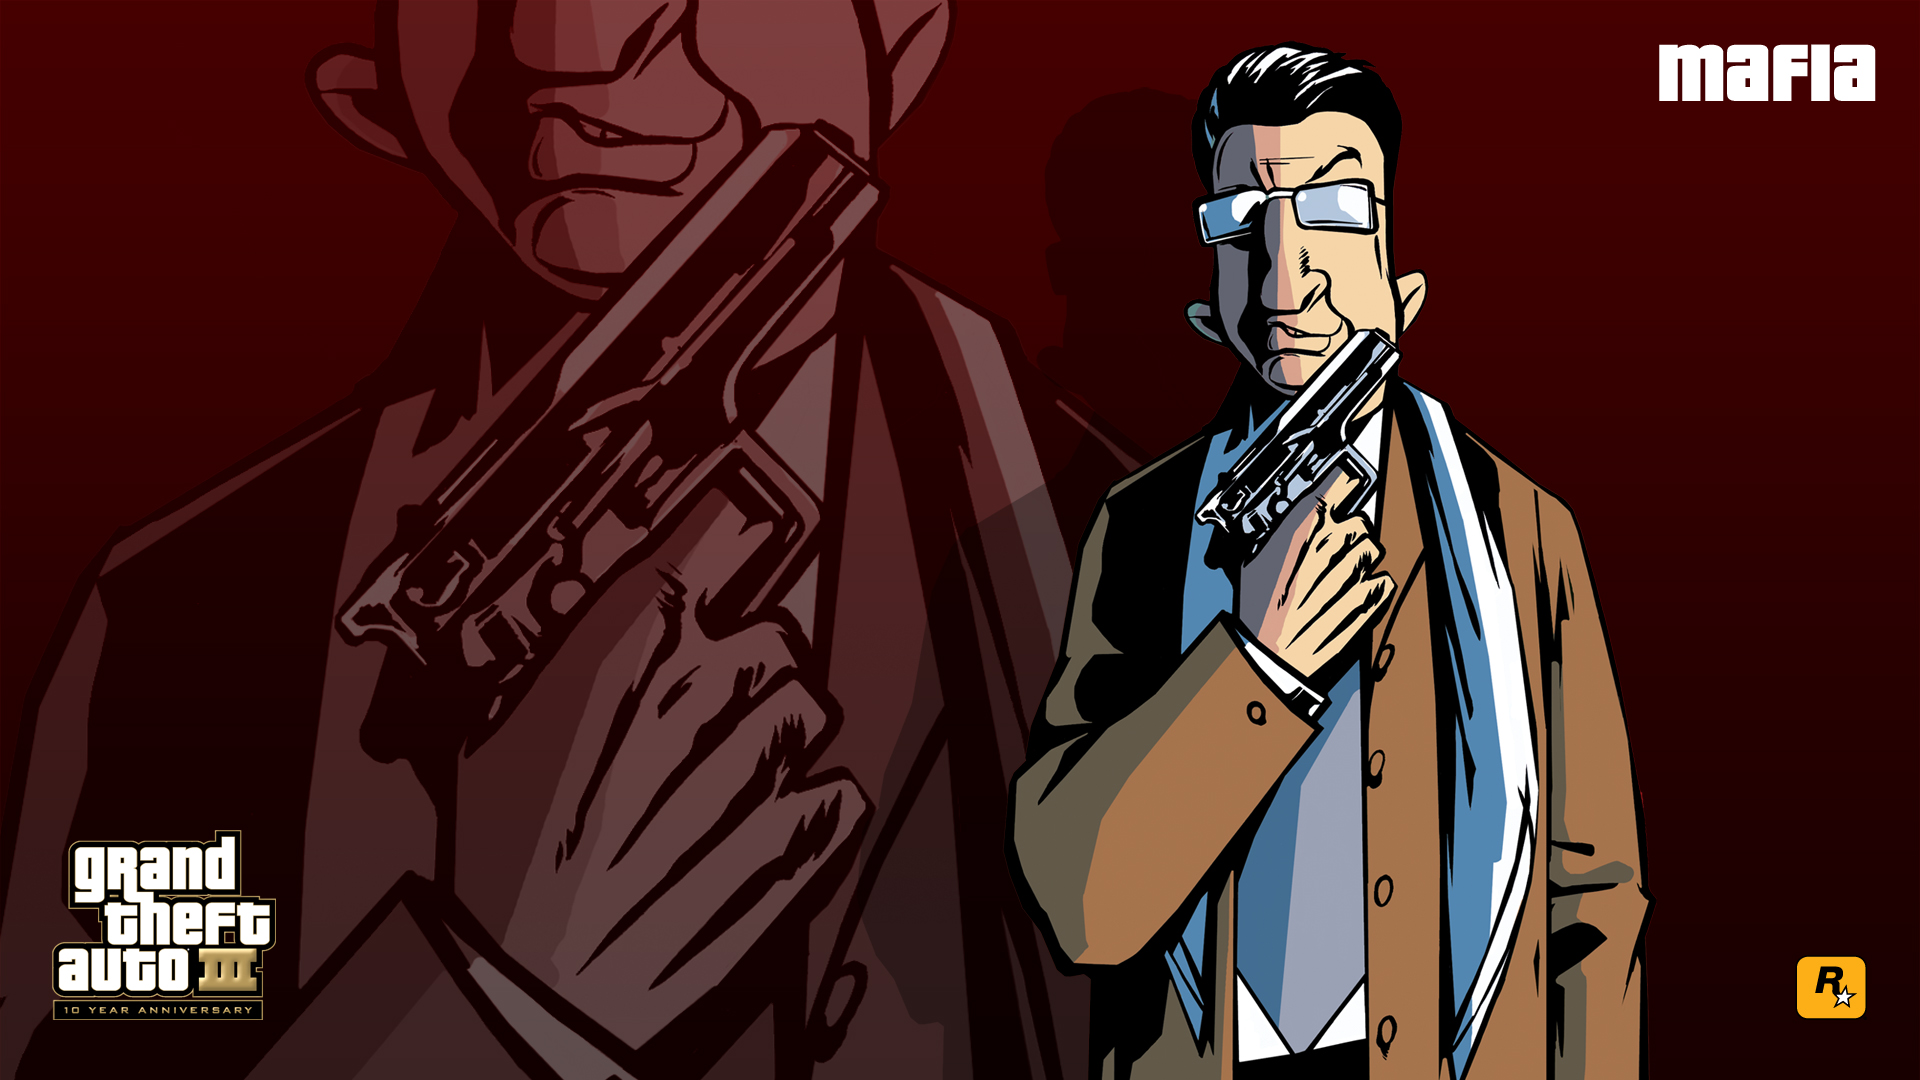 Free Download Wallpapers Fond Decran Pour Grand Theft Auto Iii Pc